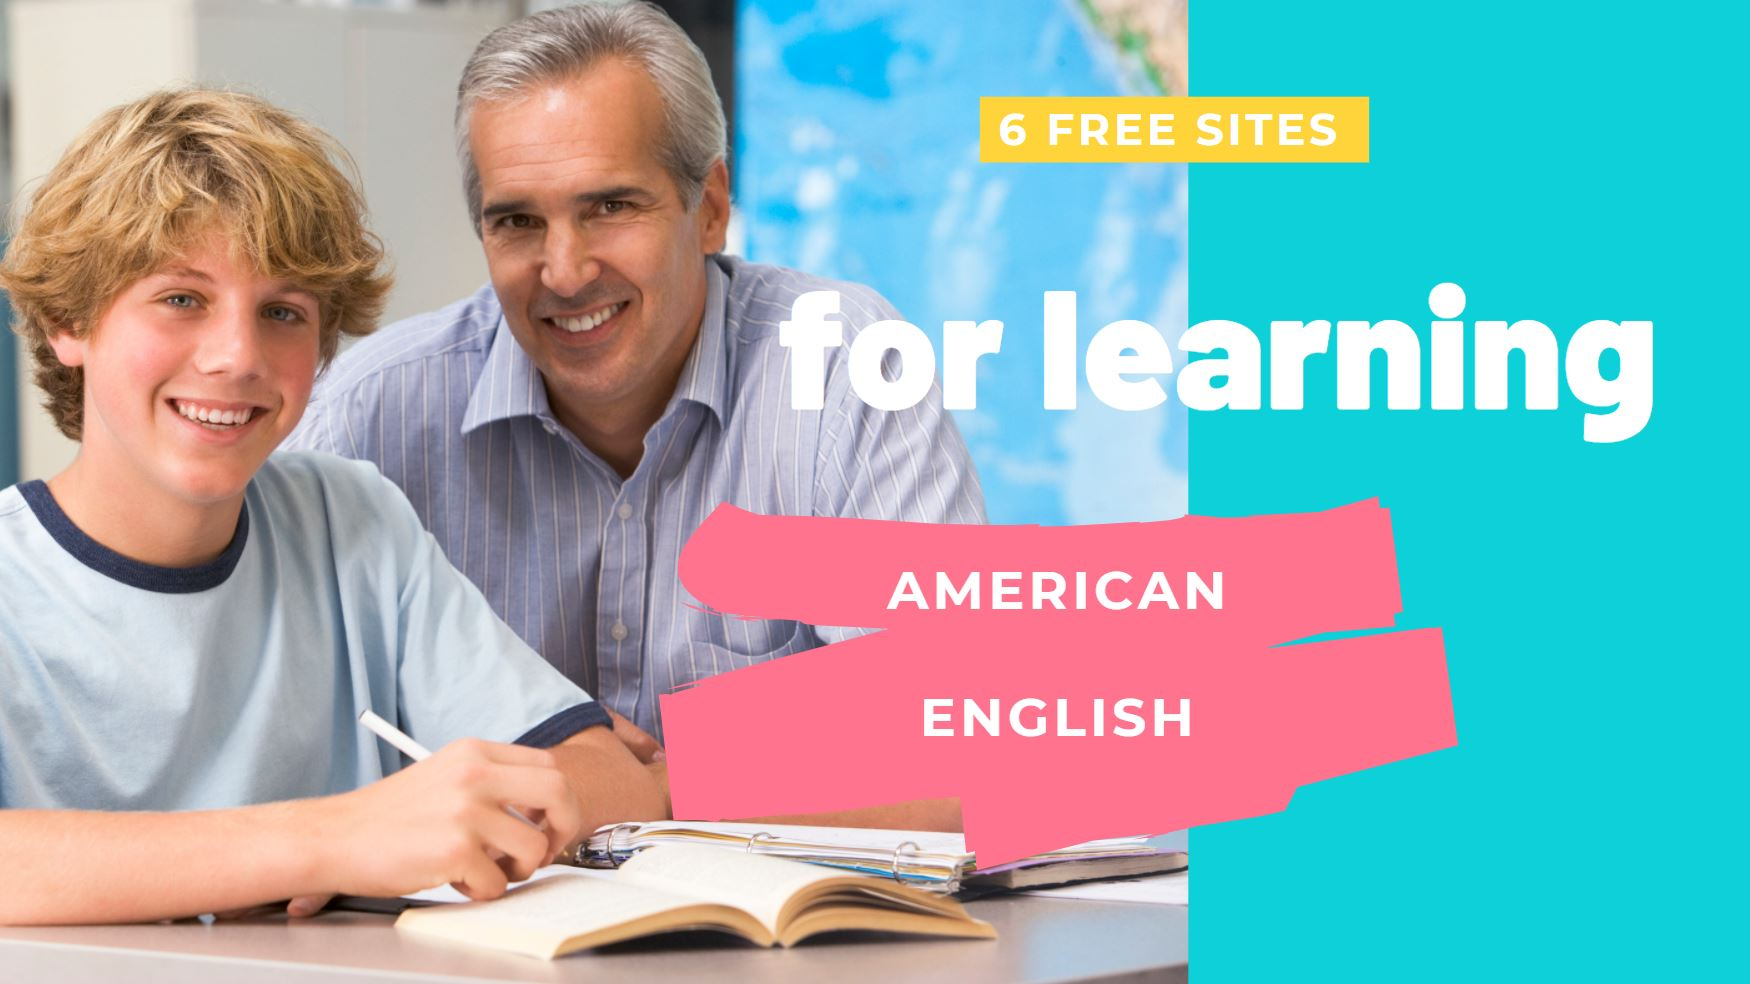 6 free websites for learning american english